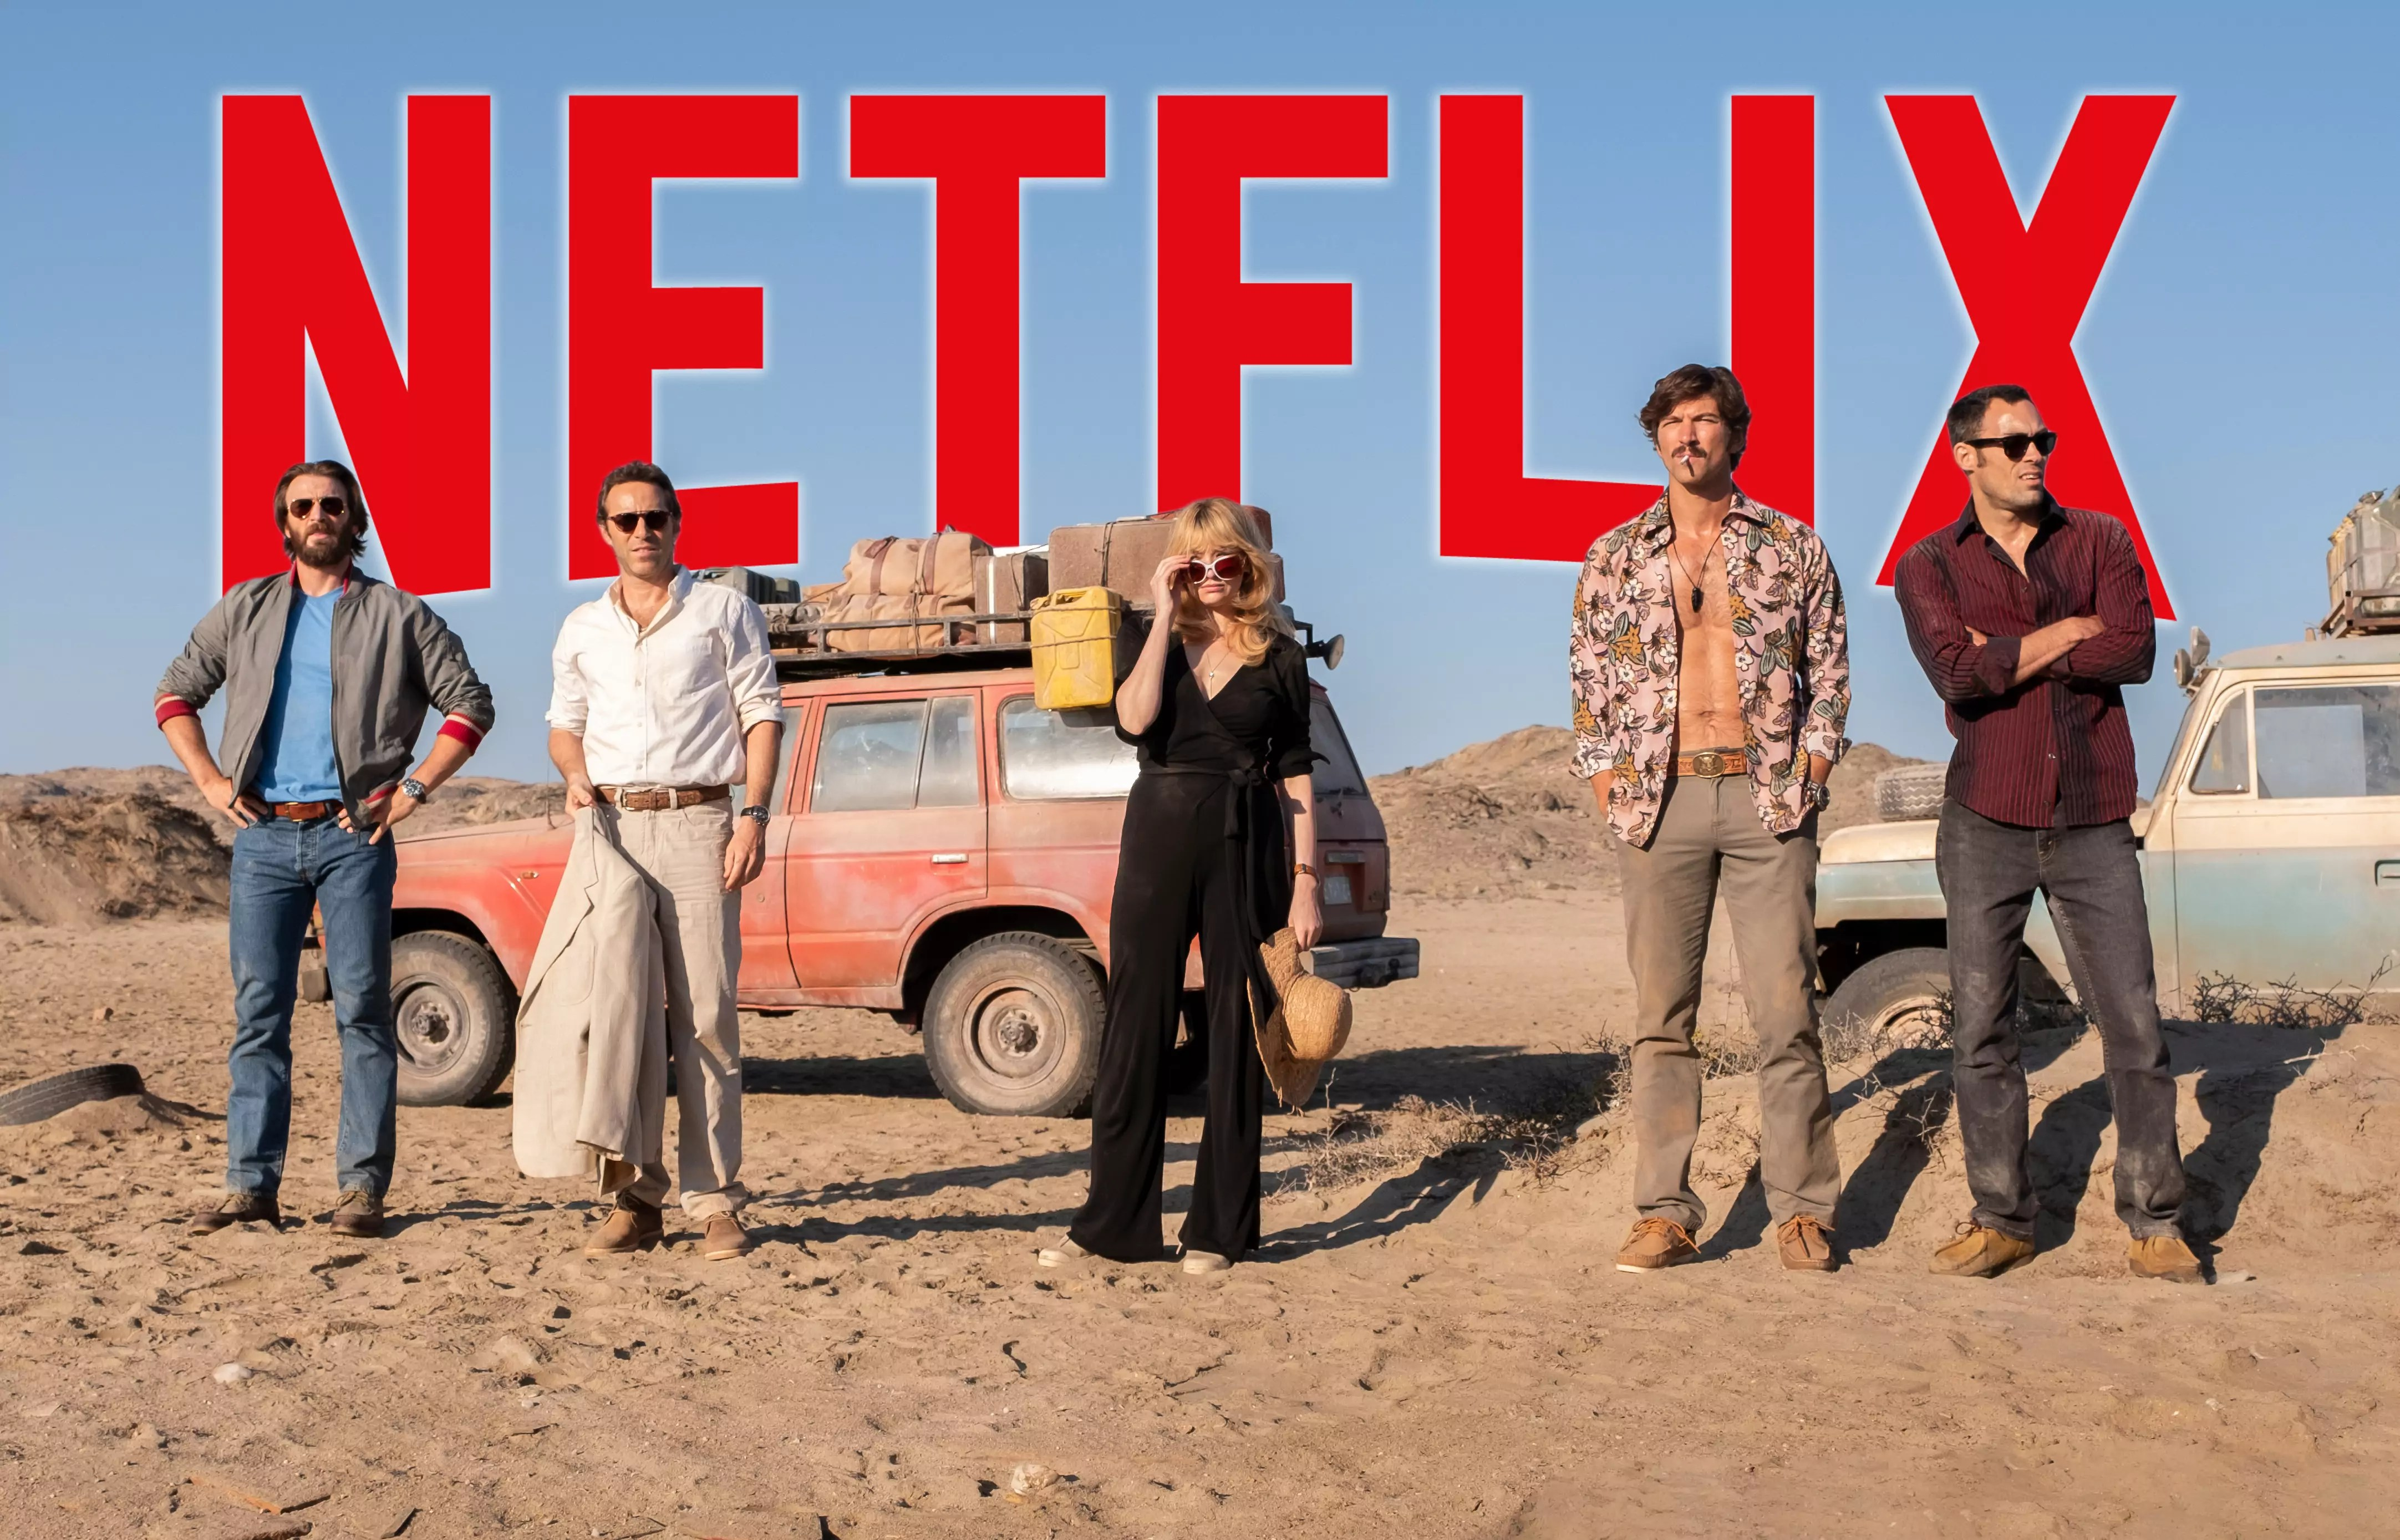 The Red Sea Diving Resort, The Red Sea Diving Resort Netflix, The Red Sea Diving Resort Kritik